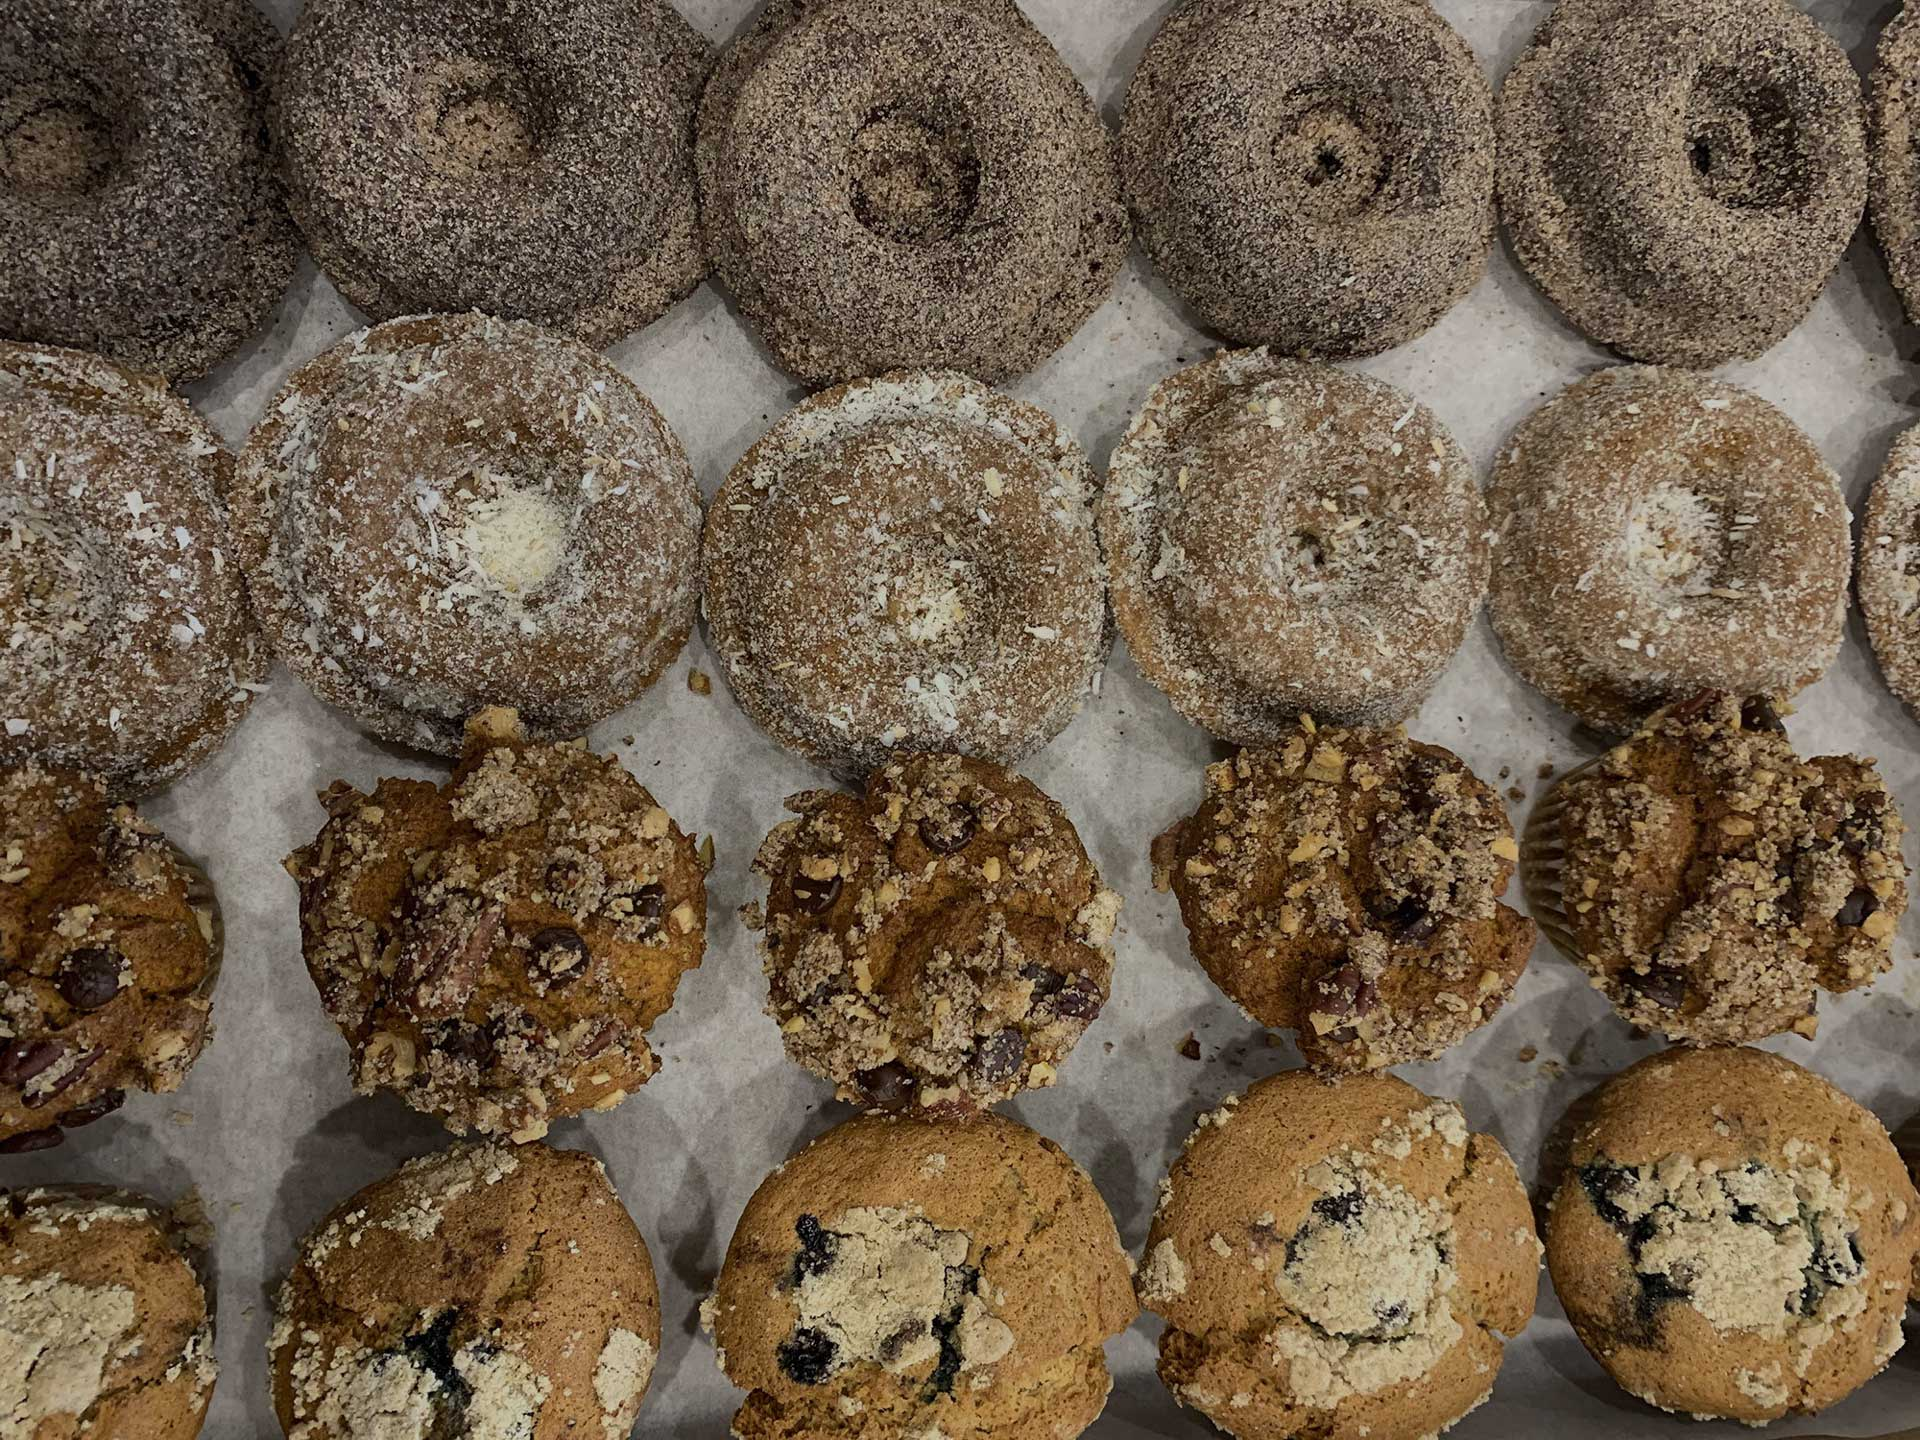 Gluten free and vegan donuts from Om Sweet Home